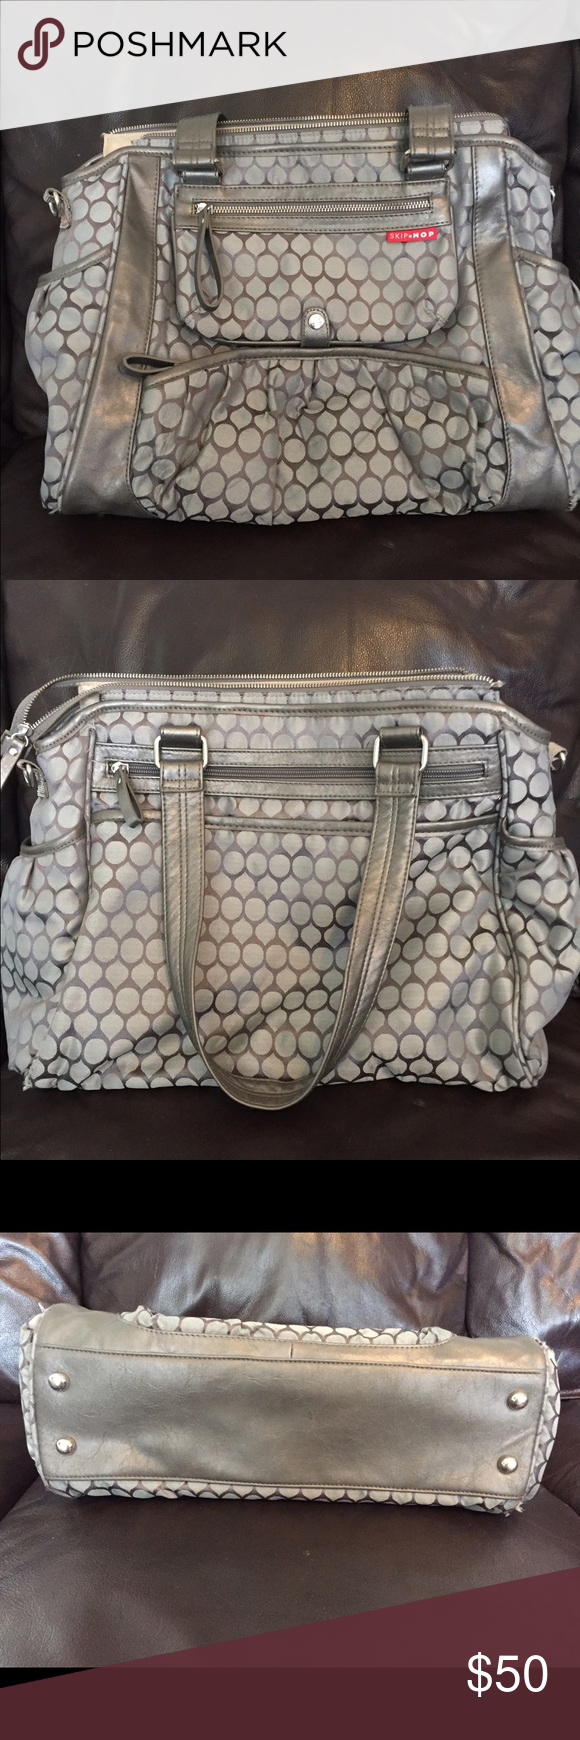 Skip Hop Diaper bag/tote Skip Hop diaper/tote bag in great condition. Interior has some minor staining, see pic. Bottom has some small pulls from normal wear. Bag is extremely functional and has many pockets. There is even an antimicrobial treated pocket. Super cute bag! Bags Baby Bags